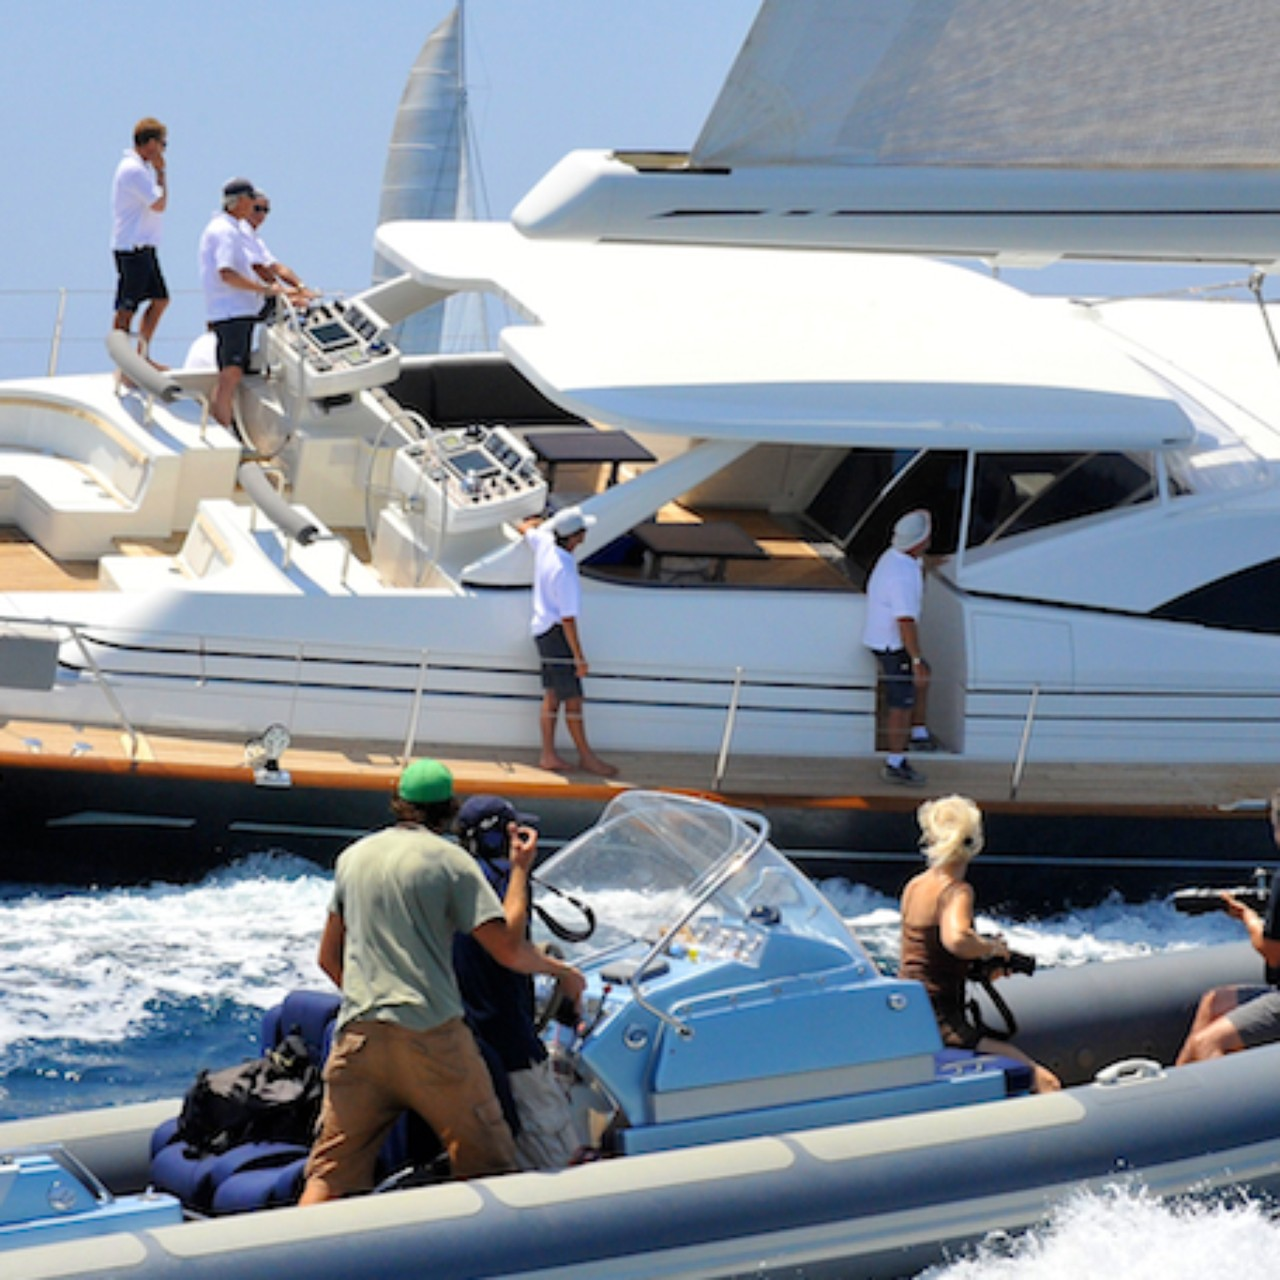 Photographing The Sail Yacht Ganesha At The Superyacht Cup Palma